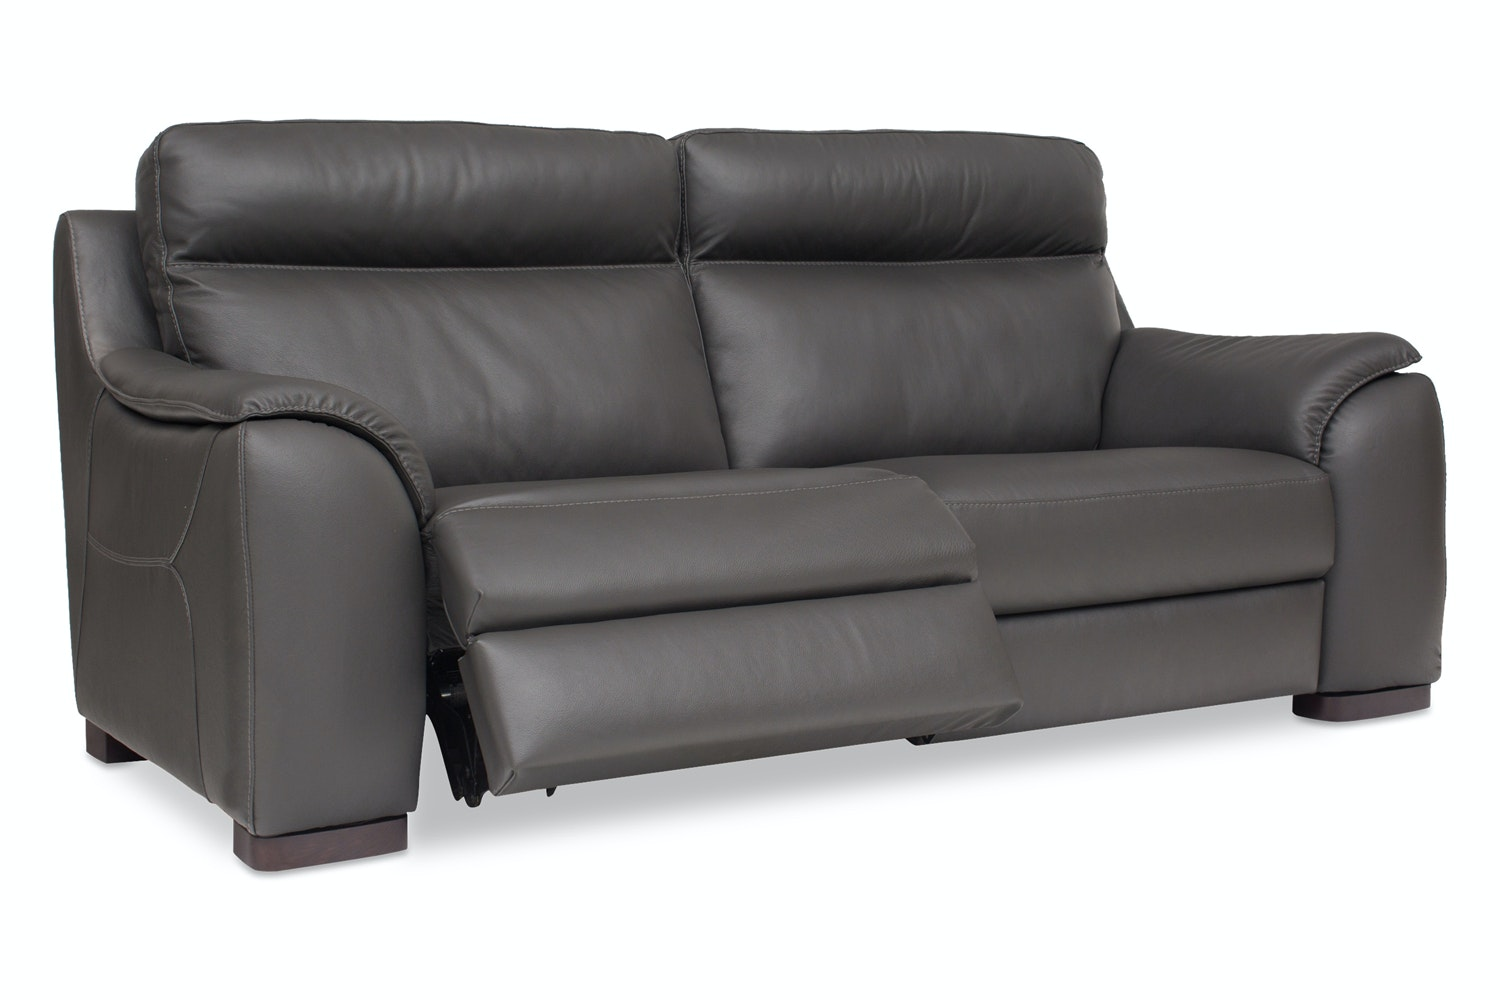 Harrods 3 Seater Recliner Sofa